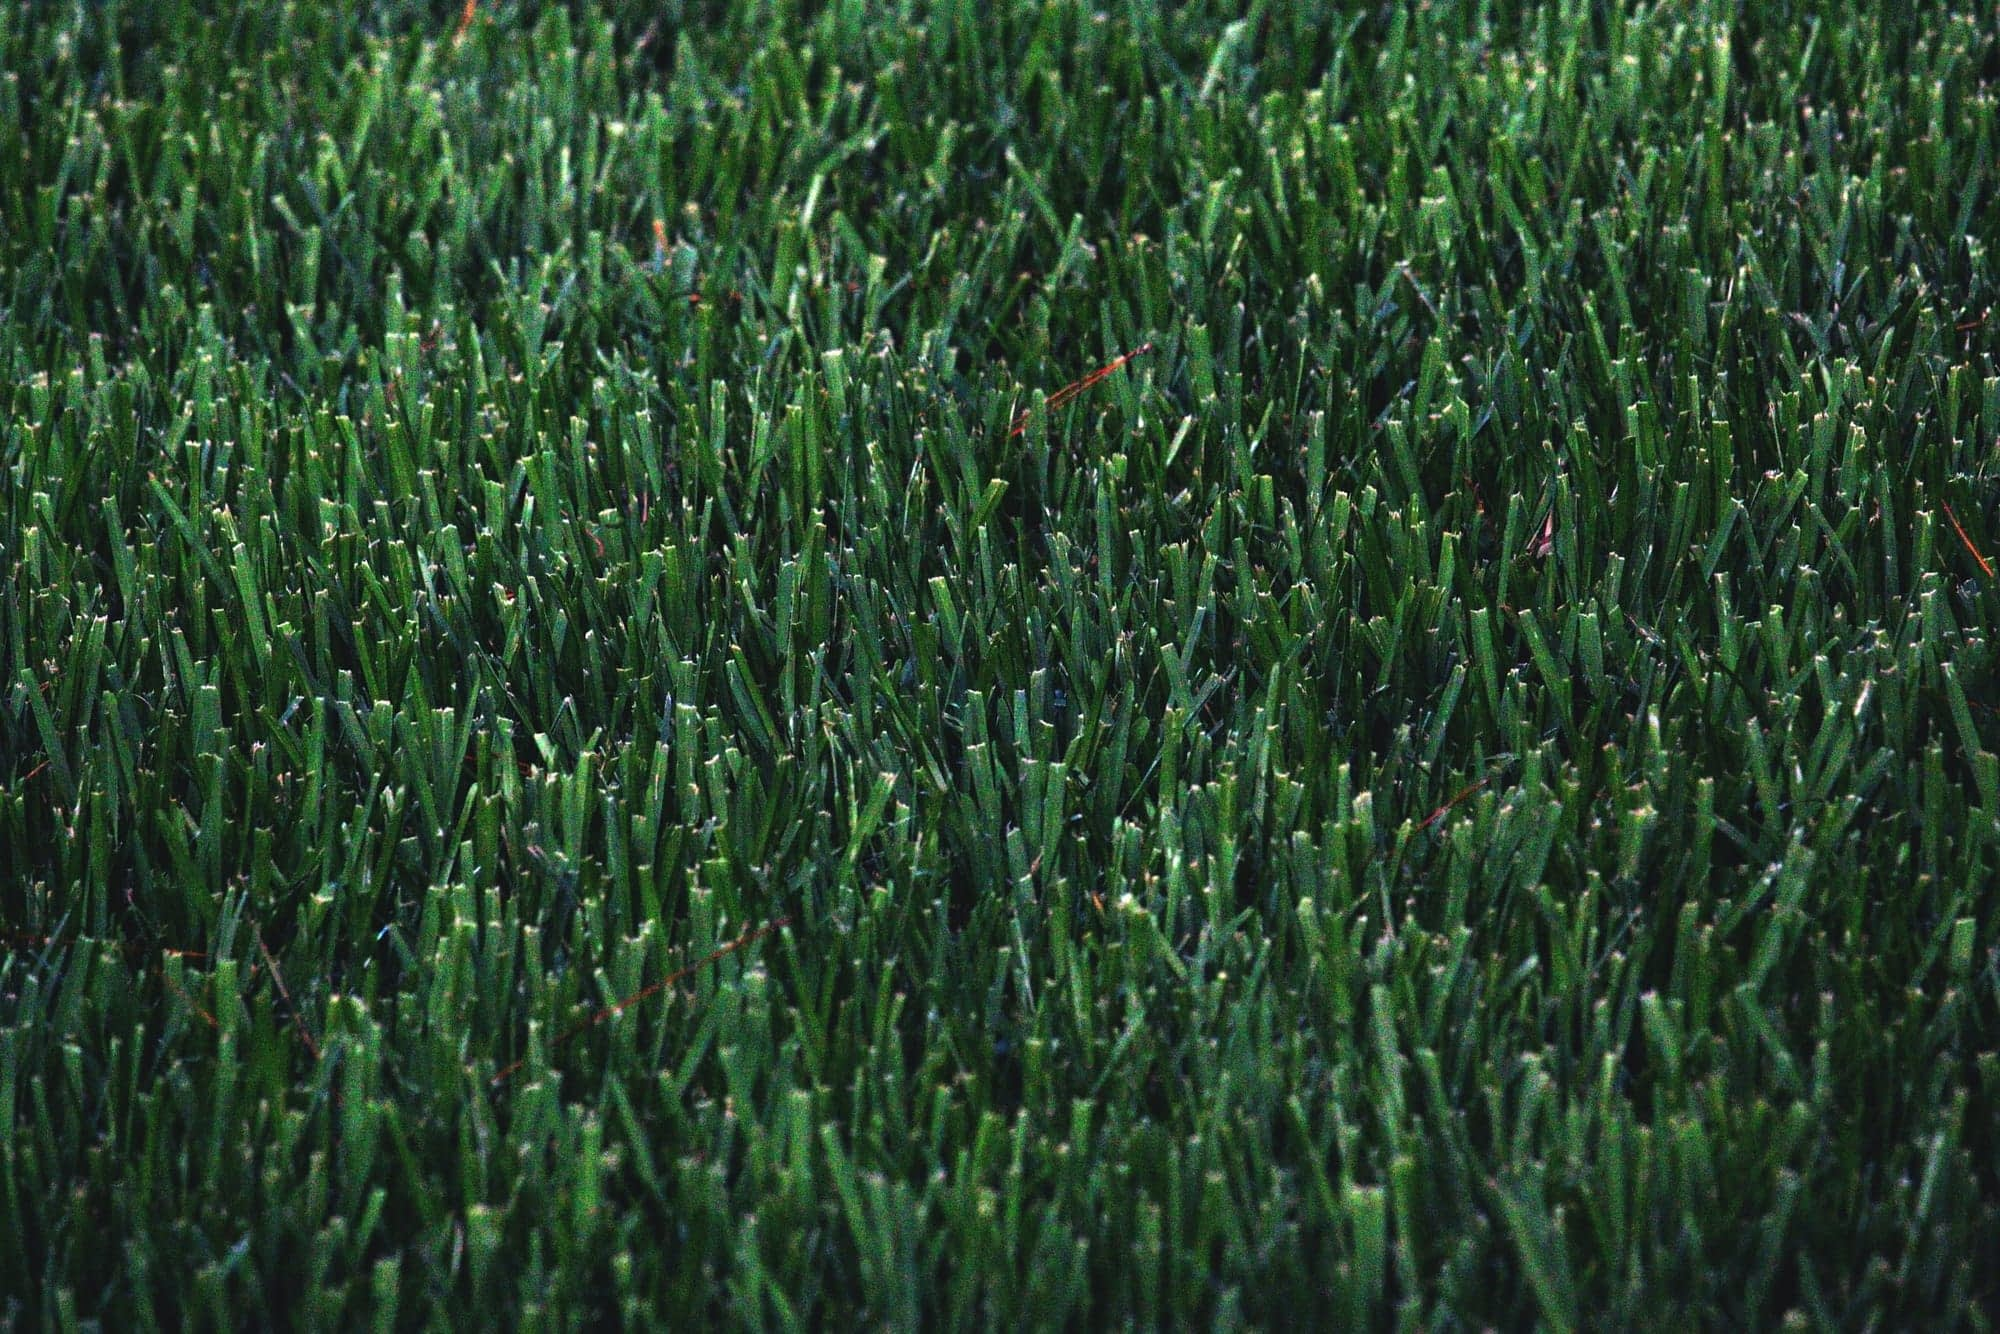 a close up of neatly trimmed grass